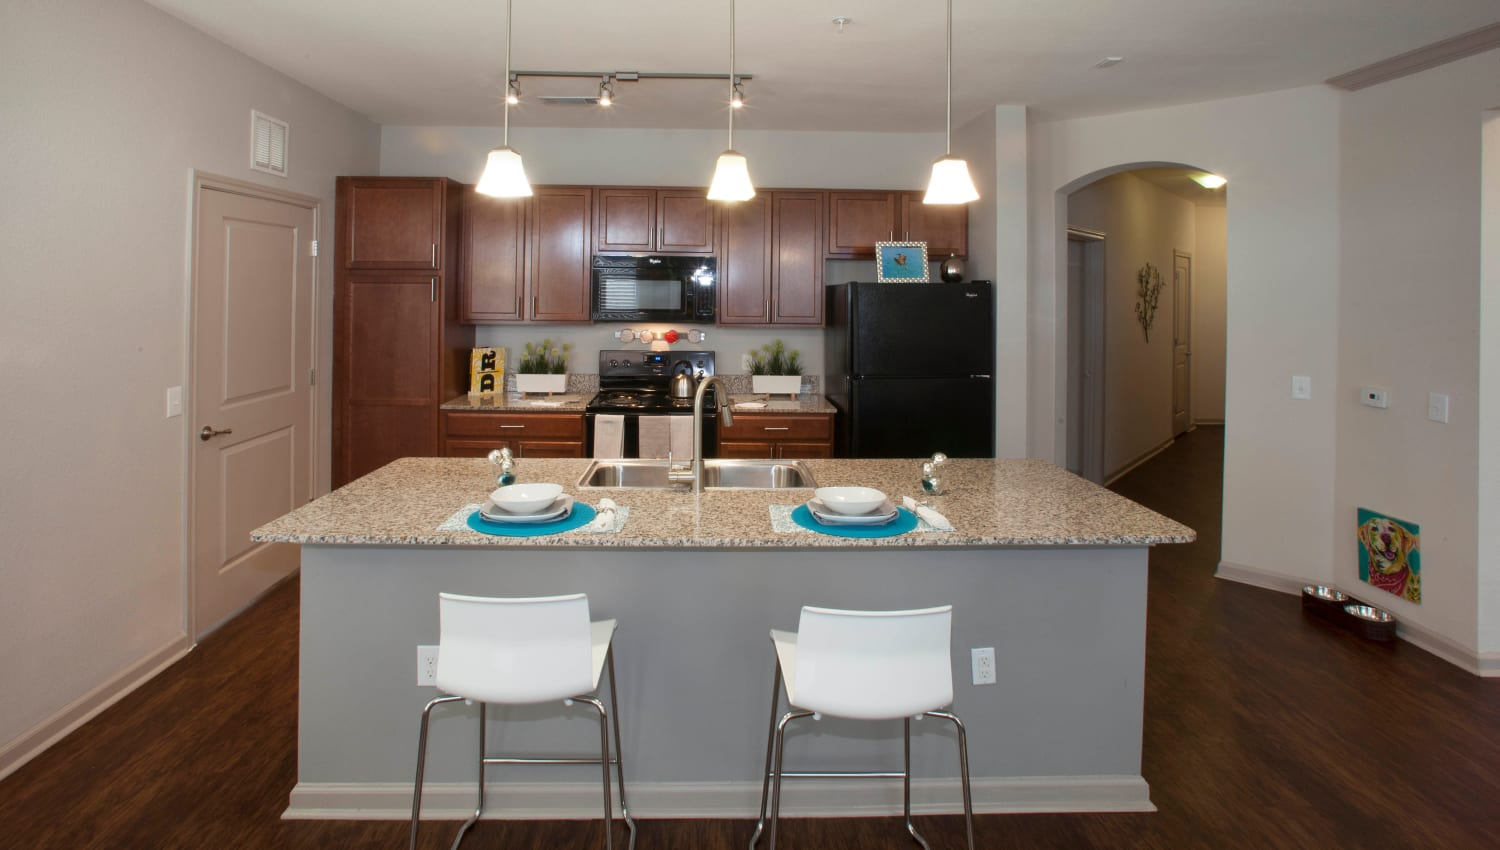 Gourmet kitchen with granite countertops in a model apartment at Olympus Katy Ranch in Katy, Texas